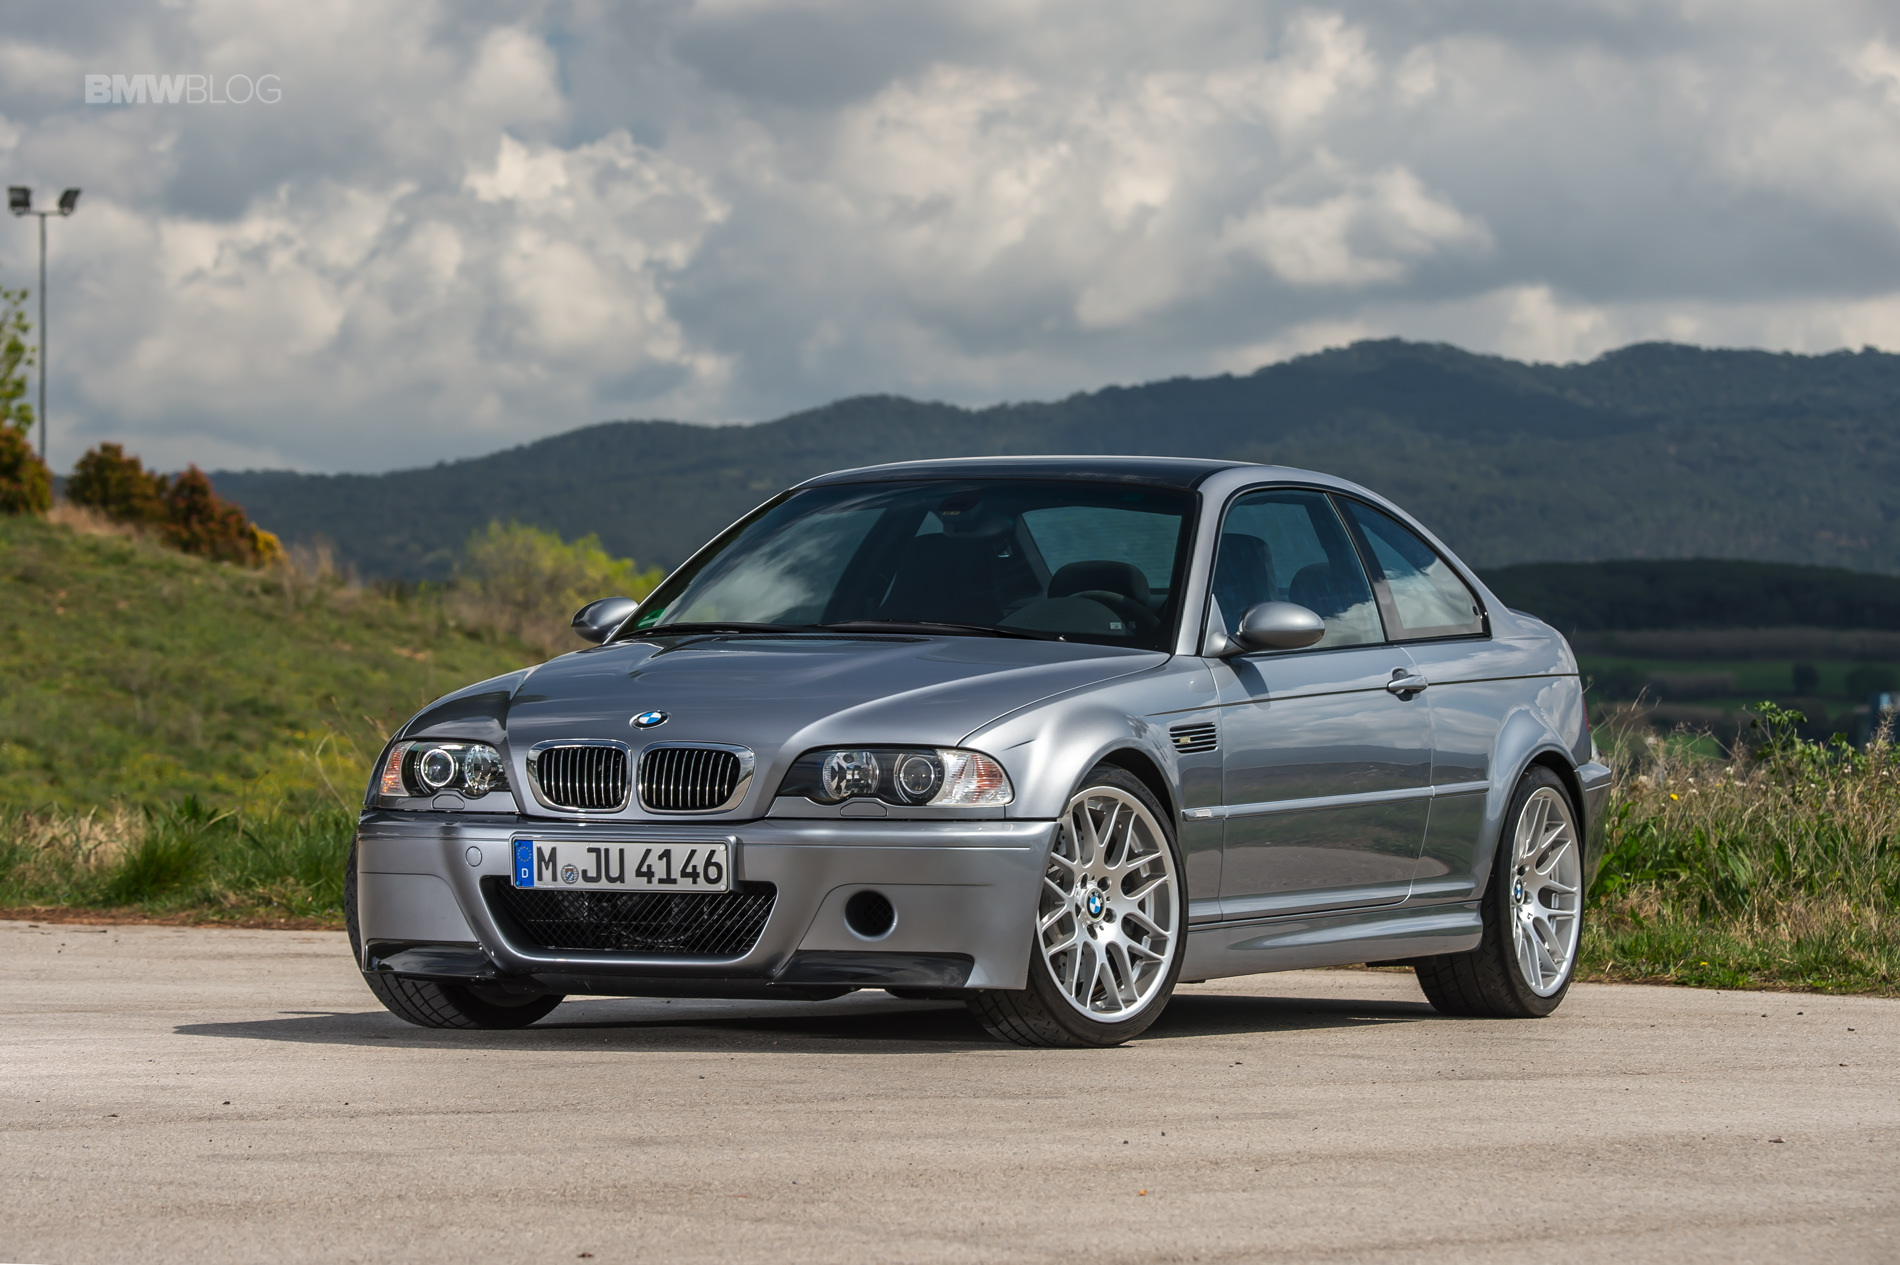 Video Lucky Bmw E46 M3 Csl Owner Picks Up Car